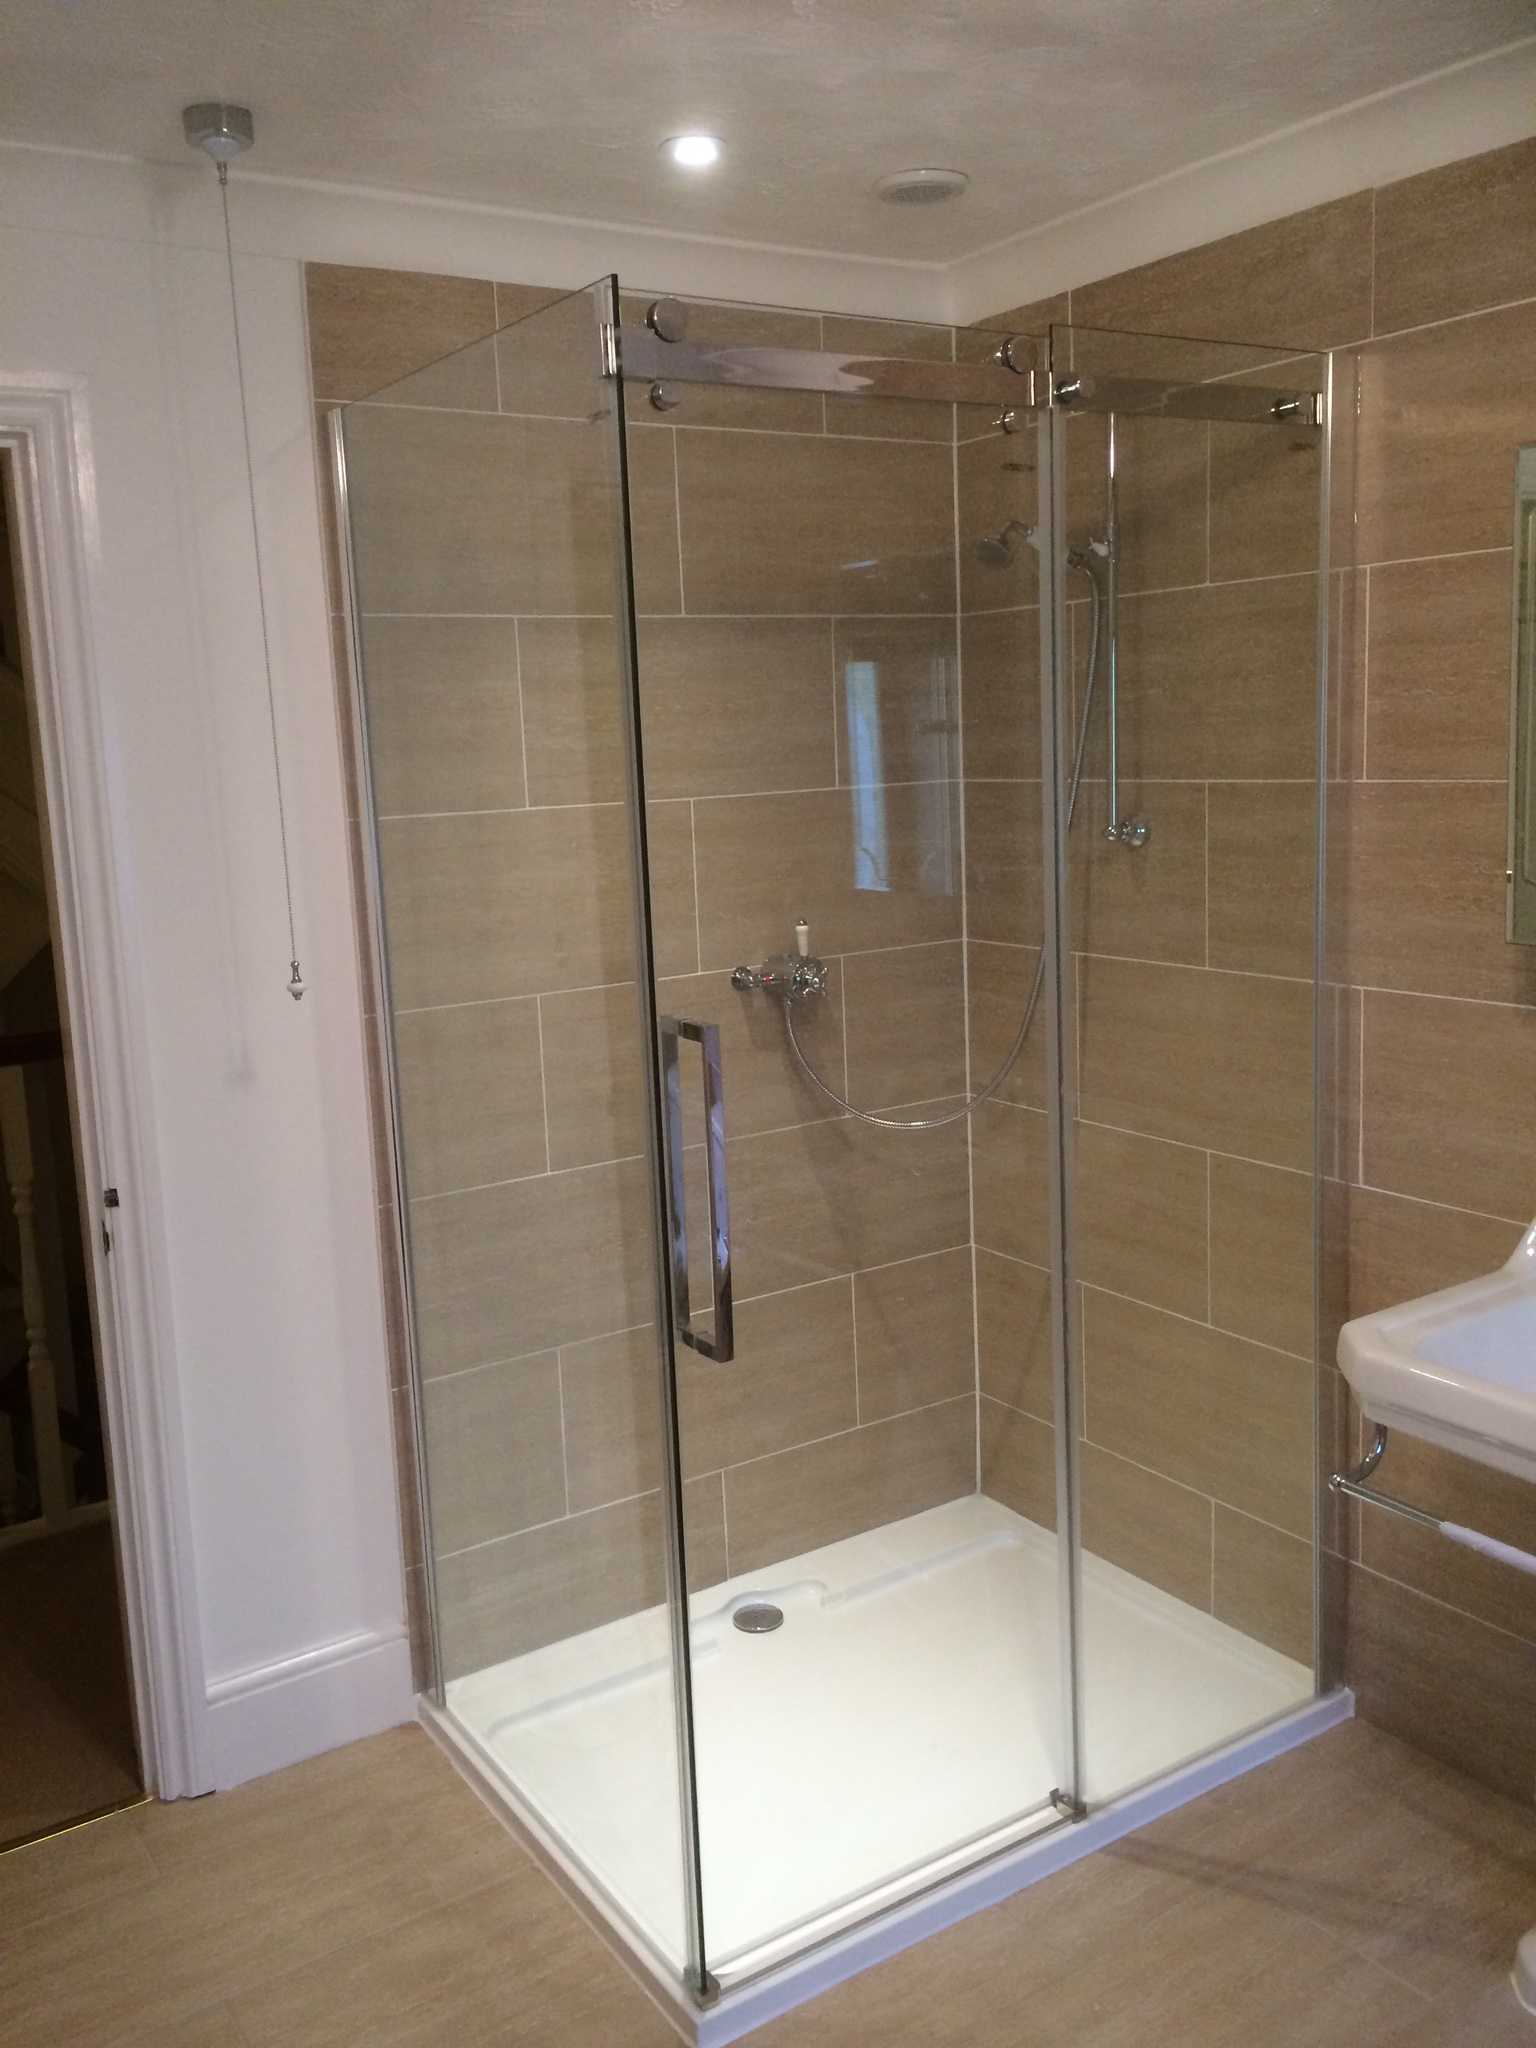 Instant Quotation,ON-LINE PRICING for Bathroom installations and luxurious shower rooms and wetrooms, we also carry out full PROPERTY REFURBISHMENTS, along with our bathroom installations and beautiful bathroom, luxury bathroom, how much does a bathroom cost, how much to install bathroom, we offer free consultations and design of your BATHROOM and give a free price for bathroom installations, we provid a free quotation for your bathroom,  and quotations for renovation of bathroom, renovate house,  321uk, 321,321 home, 321 provide solutions to your home improvement requirements, renovate, improve, convert,  321 services, domestic extensions, builder fleet, 321builder, 321 extension, 321extension, extension builder, domestic builder, builder fleet, builder farnborough builder hook, builder camberley, builder basingstoke builder guildford, builder farnham, builder Hartley Wintney domestic builder, builder elstead, builder liss, builder chiddingfold, builder witley, builder oxshott builder claygate,builder surbiton, builder basing, recommended builder fleet, recommended builder farnborough, recommended builder hook, recommended builder camberley, recommended builder basingstoke recommended builder guildford, recommended builder farnham, recommended builder Hartley Wintney, recommended domestic builder, recommended builder elstead, recommended builder liss,recommended builder chiddingfold, recommended bathroom installer witley, recommended builder oxshott, recommended builder claygate, recommended bathroom installer surbiton, recommended bathroom installer basing, local builder fleet, local builder farnborough, local builder hook, local bathroom company camberley, local bathroom installer basingstoke, local builder guildford, local builder farnham, local builder Hartley Wintney, local builder windlesham, local builder ascot, local builder sunningdale, local builder virginia water, local builder lightwater, local builder dogmersfield, local builder spencers wood ,home improvements, 321 electrical installations, 321 plumbing, 321 kitchens, 321 property investments, 321 marketing, 321 proof reading, 321 project management,Our experience, expertise and friendly helpful approach has helped us to become an established and trusted name, with a reputation for courteous, professional service, Call for a free Quotation on 08456 032641, Friendly Service, Fleet, Farnborough, Hook, Hartley Wintney, Camberley, Basingstoke, Old Basing, Sandhurst, Crowthorne, Finchampstead, Farnham, Guildford, Ripley, Send, Church Crookham, Winchfield, Dogmersfield, Winchester, Eastleigh, Bordon, Petersfield, Haslemere, Hindhead, Chilworth, Bramley, Godalming, Lower Earley, Woodley, Reading, Newbury, Oxford, Sonning, Marlow, Tilehurst, Taplow, Burnham Common, Staines, Chertsey, Windsor, Hampton, Richmond, Leatherhead, Ashford Surrey, Cove, Frimley, Camberley, 321 PVCu windows, Quote for window replacement, quote for new windows, price to replace windows, Receive Free Quotation for New Windows, Quotation for Replacement French doors, quote new front door, price to replace window, Call for a free Quotation on 08456 032641, Friendly Service, Fleet, Farnborough, Hook, Hartley Wintney, Camberley, Basingstoke, Old Basing, Sandhurst, Crowthorne, Finchampstead, Farnham, Guildford, Ripley, Send, Church Crookham, Winchfield, Dogmersfield, Winchester, Eastleigh, Bordon, Petersfield, Haslemere, Hindhead, Chilworth, Bramley, Godalming, Lower Earley, Woodley, Reading, Newbury, Oxford, Sonning, Marlow, Tilehurst, Taplow, Burnham Common, Staines, Chertsey, Windsor, Hampton, Richmond, Leatherhead, Ashford Surrey, Cove, Frimley, Camberley Fleet,, Farnborough, Hook, Hartley Wintney, Camberley, Basingstoke, Old Basing, Sandhurst, Crowthorne, Finchampstead, Farnham, Guildford, Ripley, Send, Church Crookham, Winchfield, Dogmersfield, Winchester, Eastleigh, Bordon